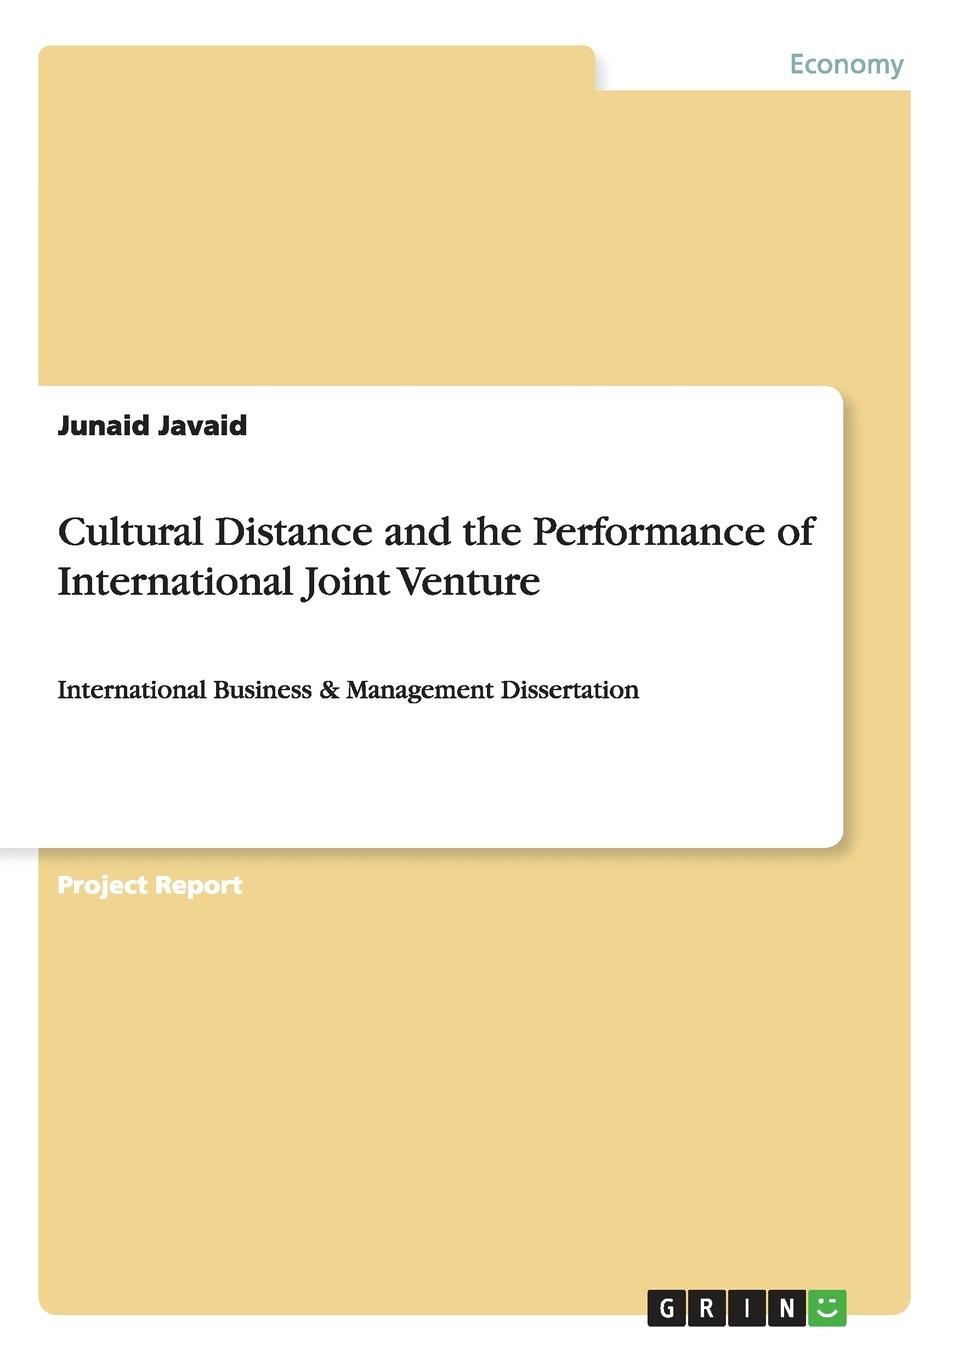 Junaid Javaid Cultural Distance and the Performance of International Joint Venture недорого